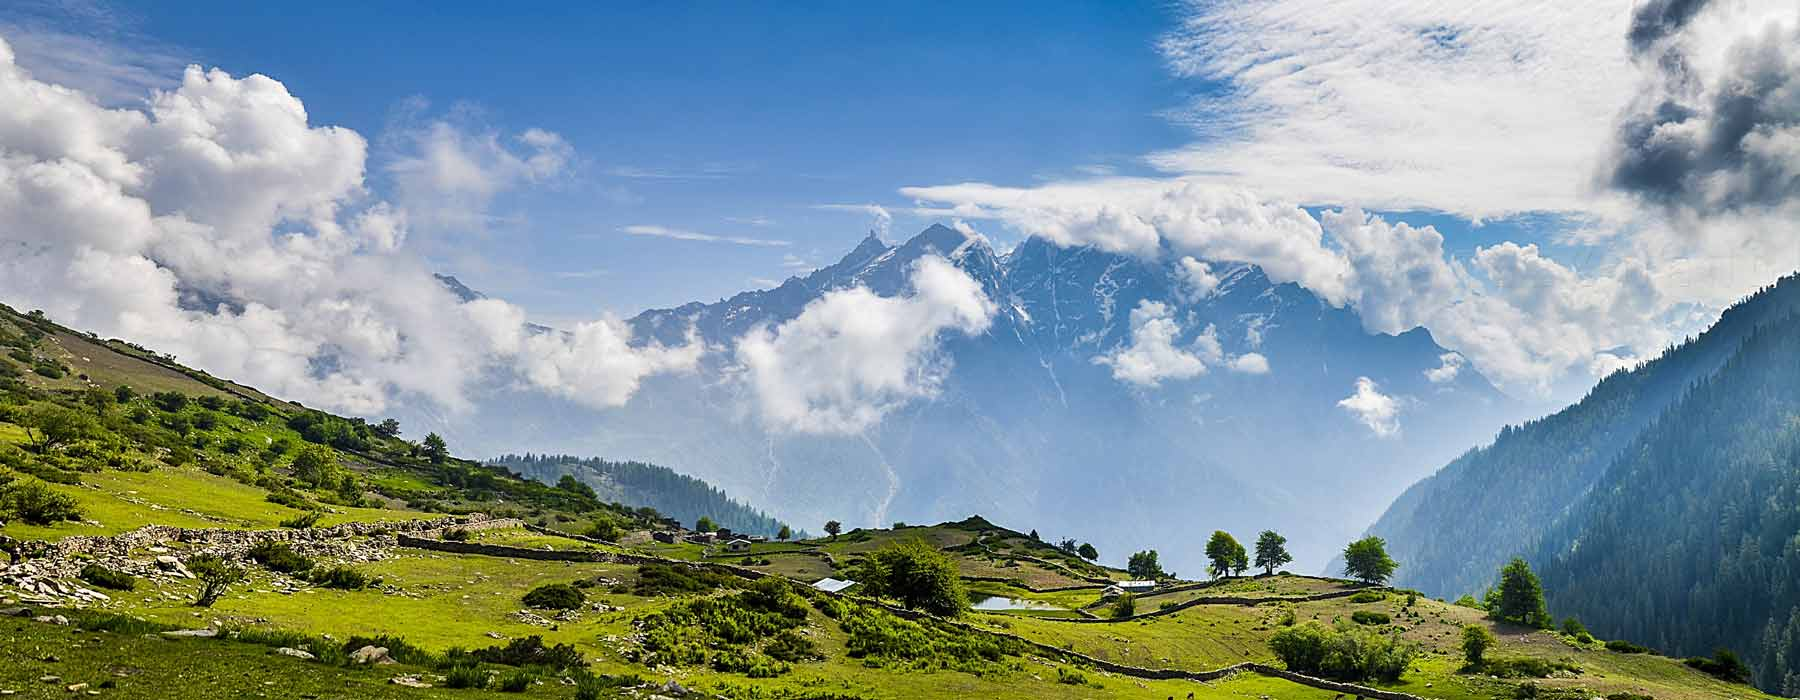 Top Hill Stations In Himachal Pradesh To Escape This Season